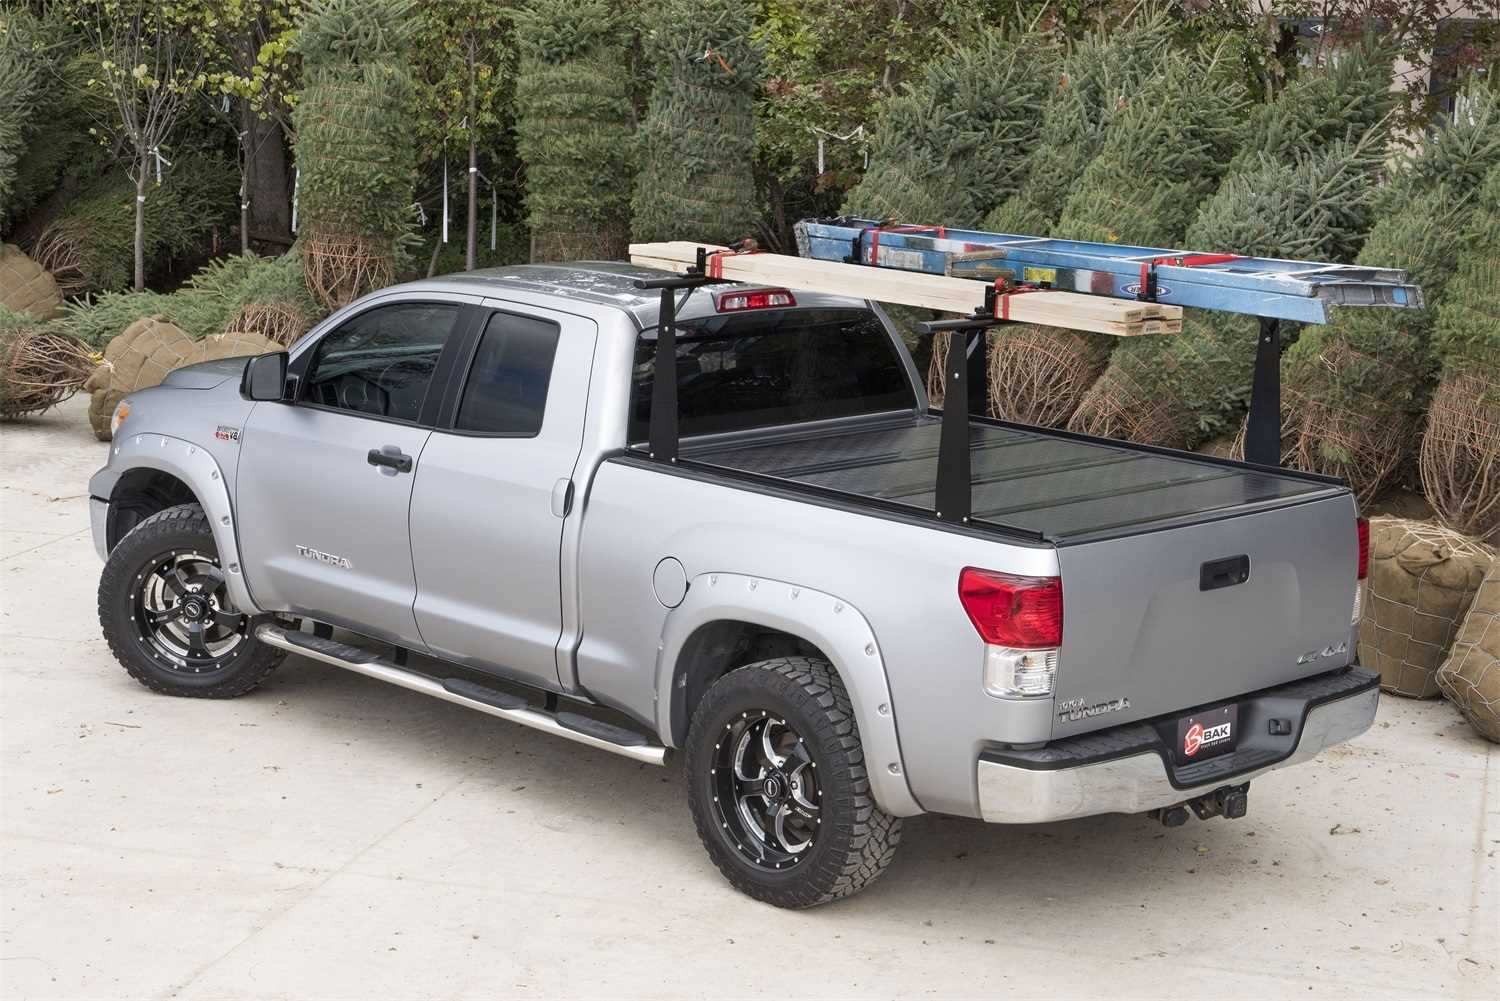 72409TBT Bak Industries BAKFlip CS-F1 Hard Folding Truck Bed Cover/Integrated Rack System